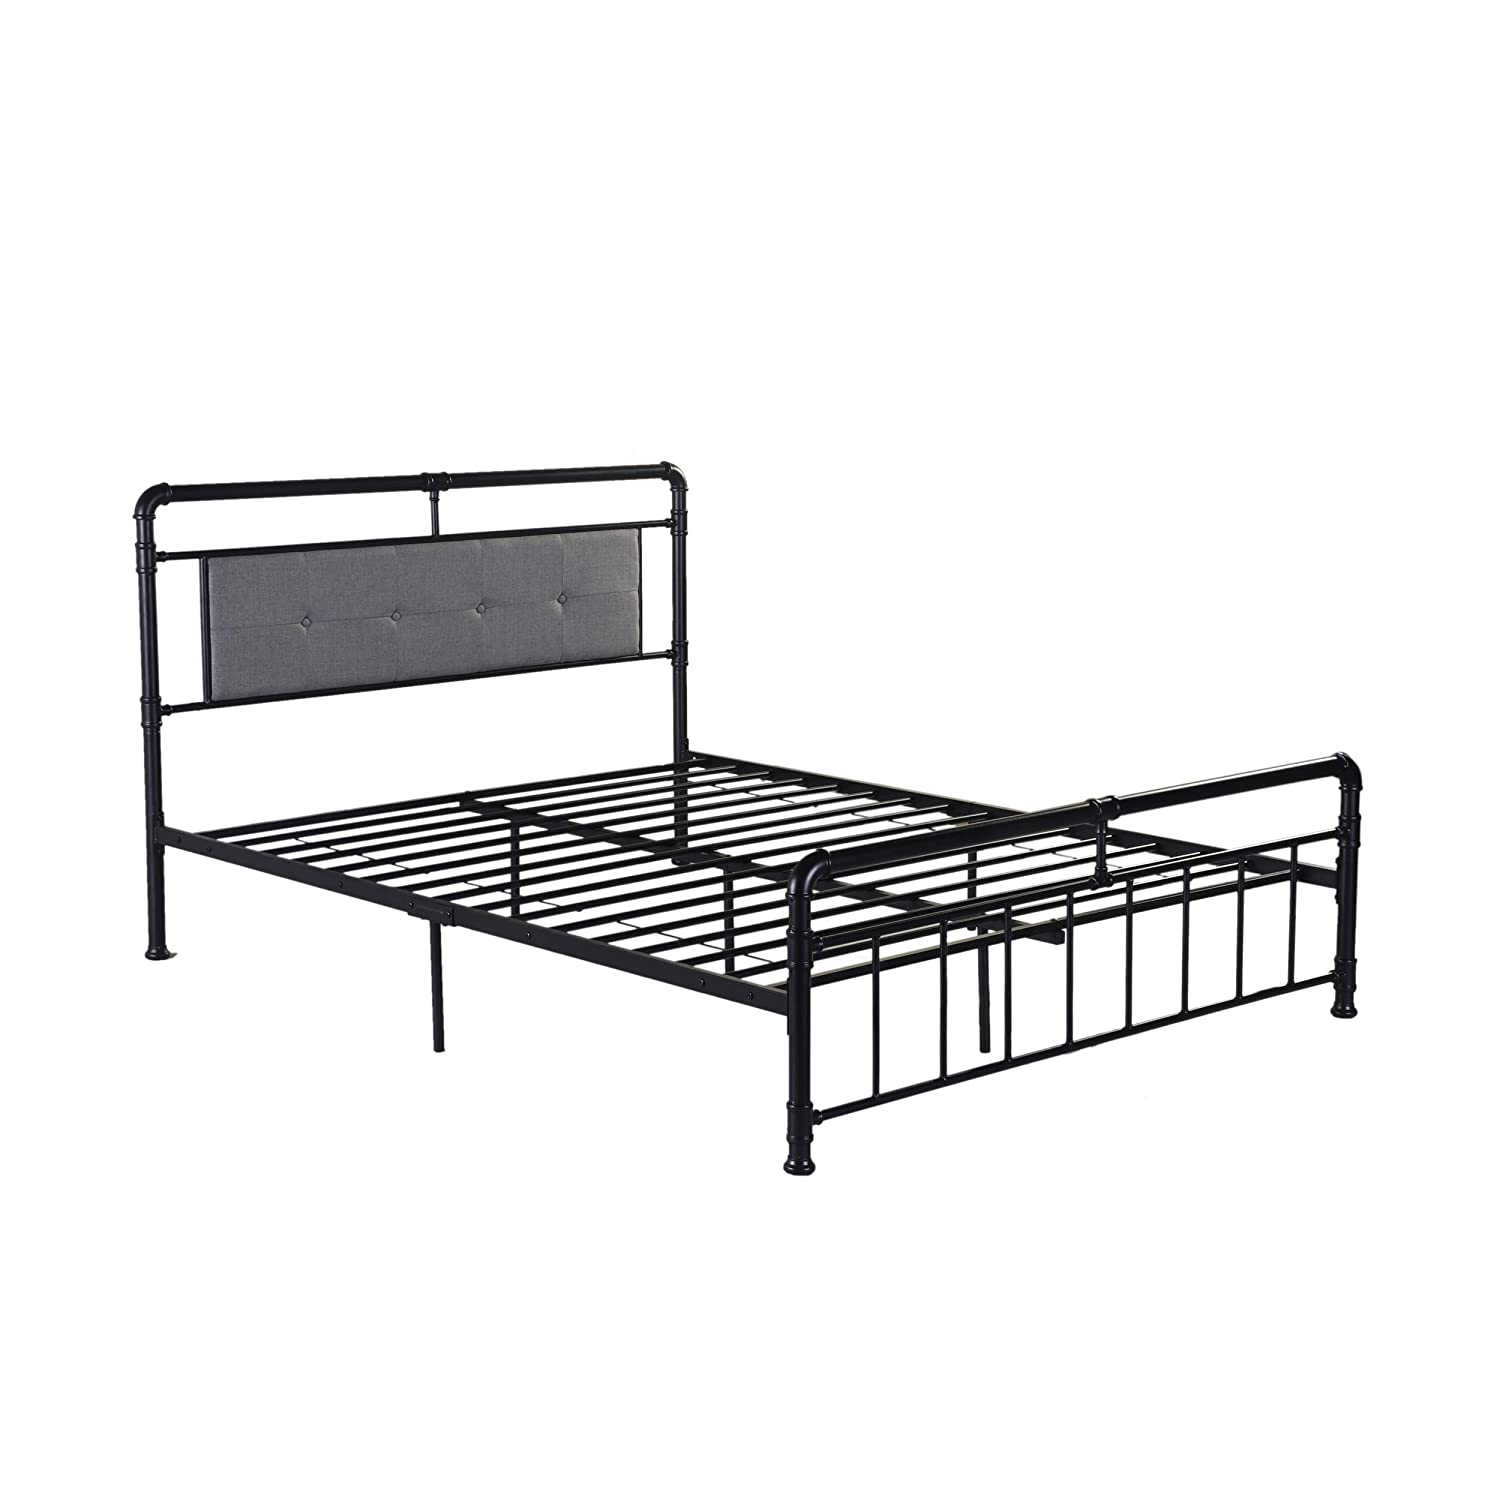 Amazon Com Truda Queen Size Iron Bed Frame Upholstered Headboard